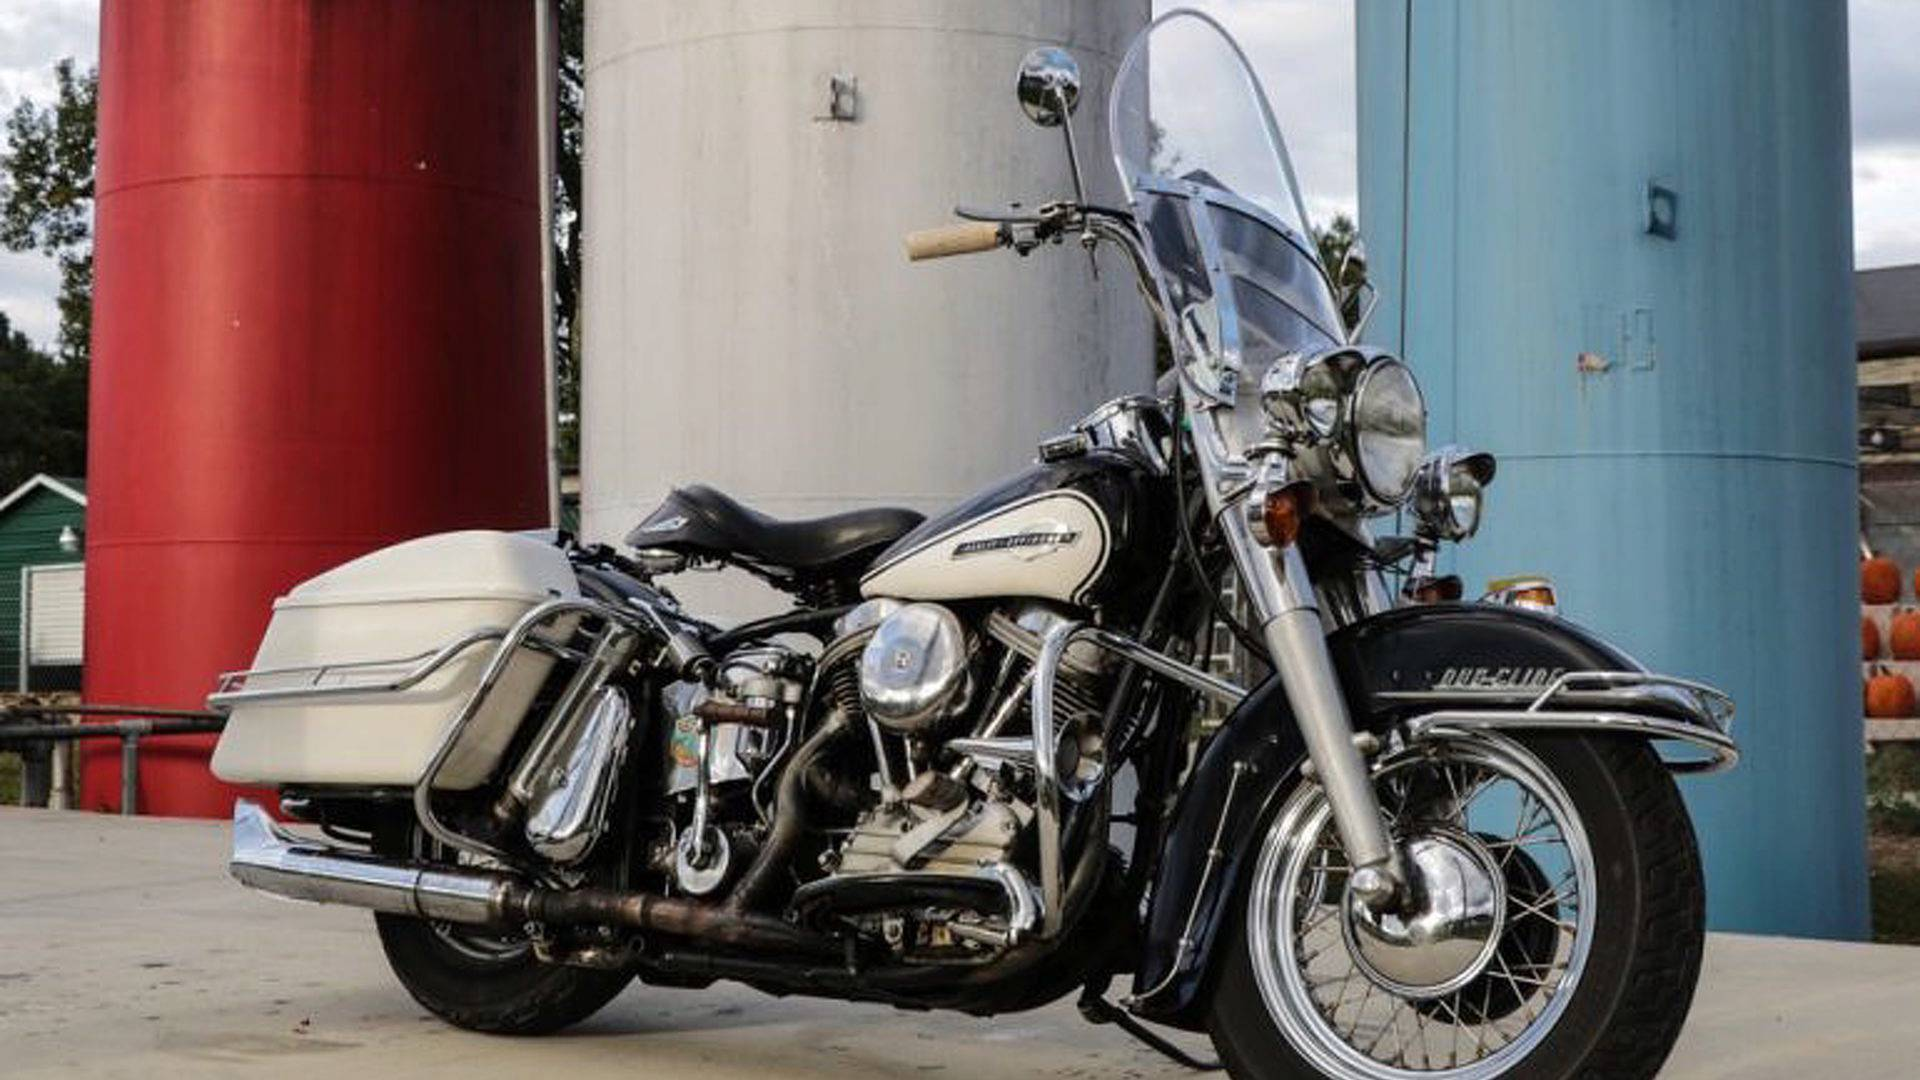 1964 Harley-Davidson FLH Duo-Glide - Vintage Review on gmc horn wiring diagram, volkswagen horn wiring diagram, harley davidson horn air cleaner, harley davidson horn cover,